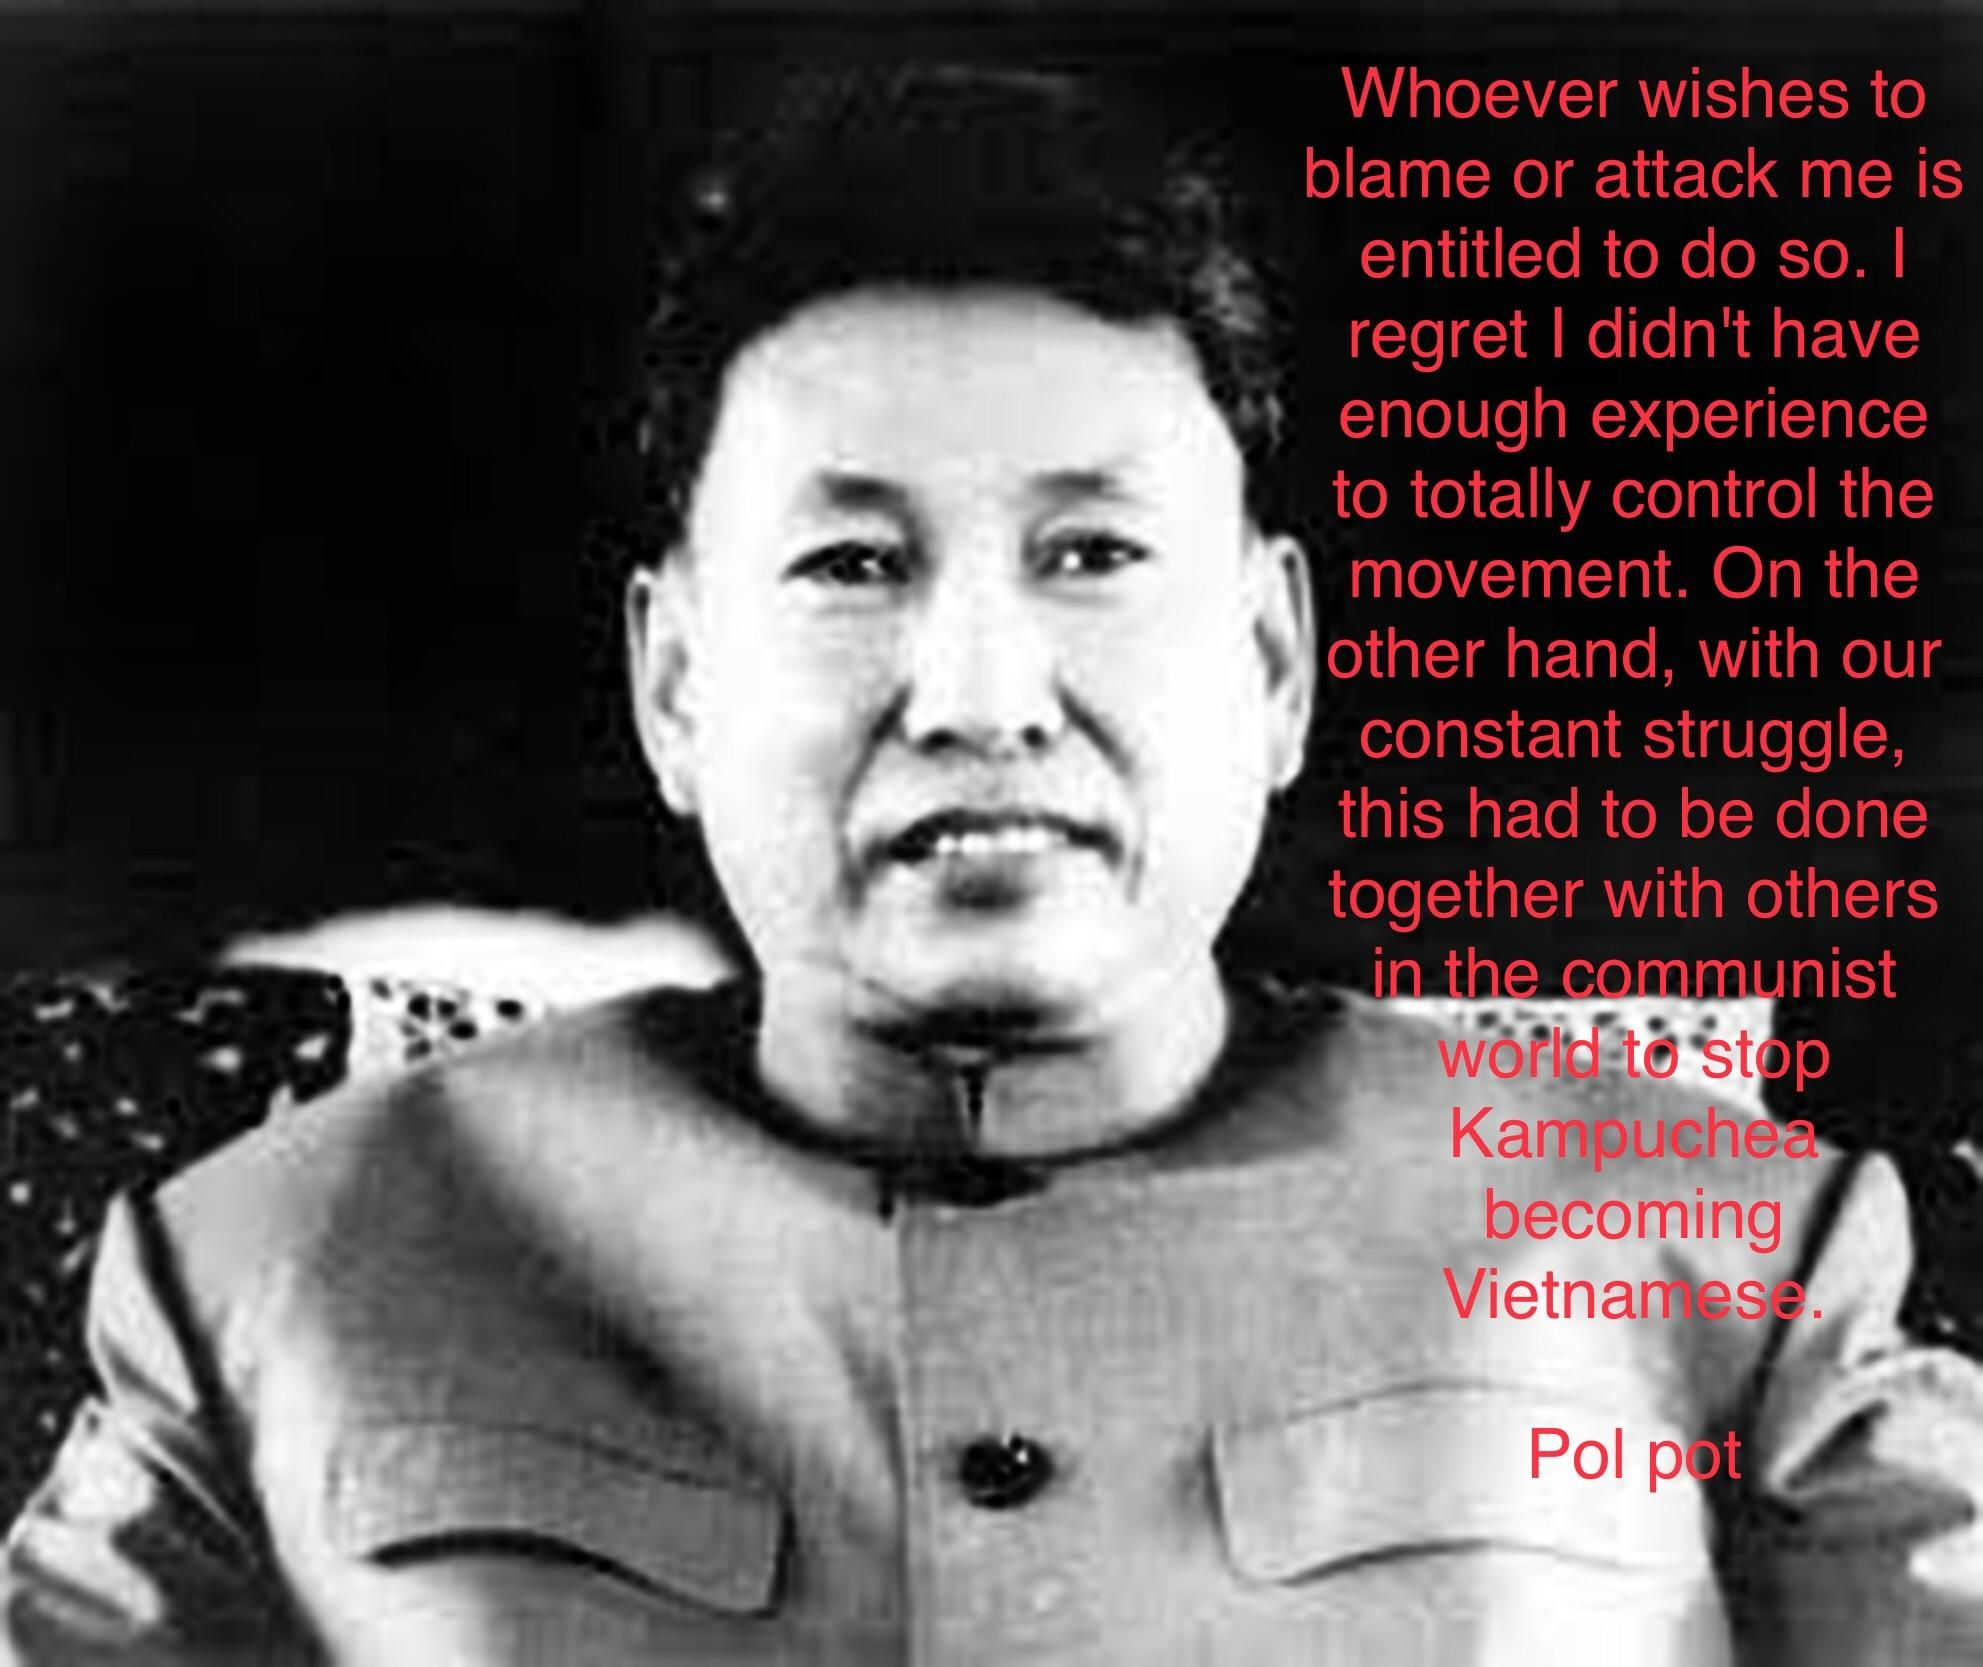 Pol Pot Quotes Amazing Whoever Wishes To Blame Or Attack Me Is Entitled To Do Sopol .